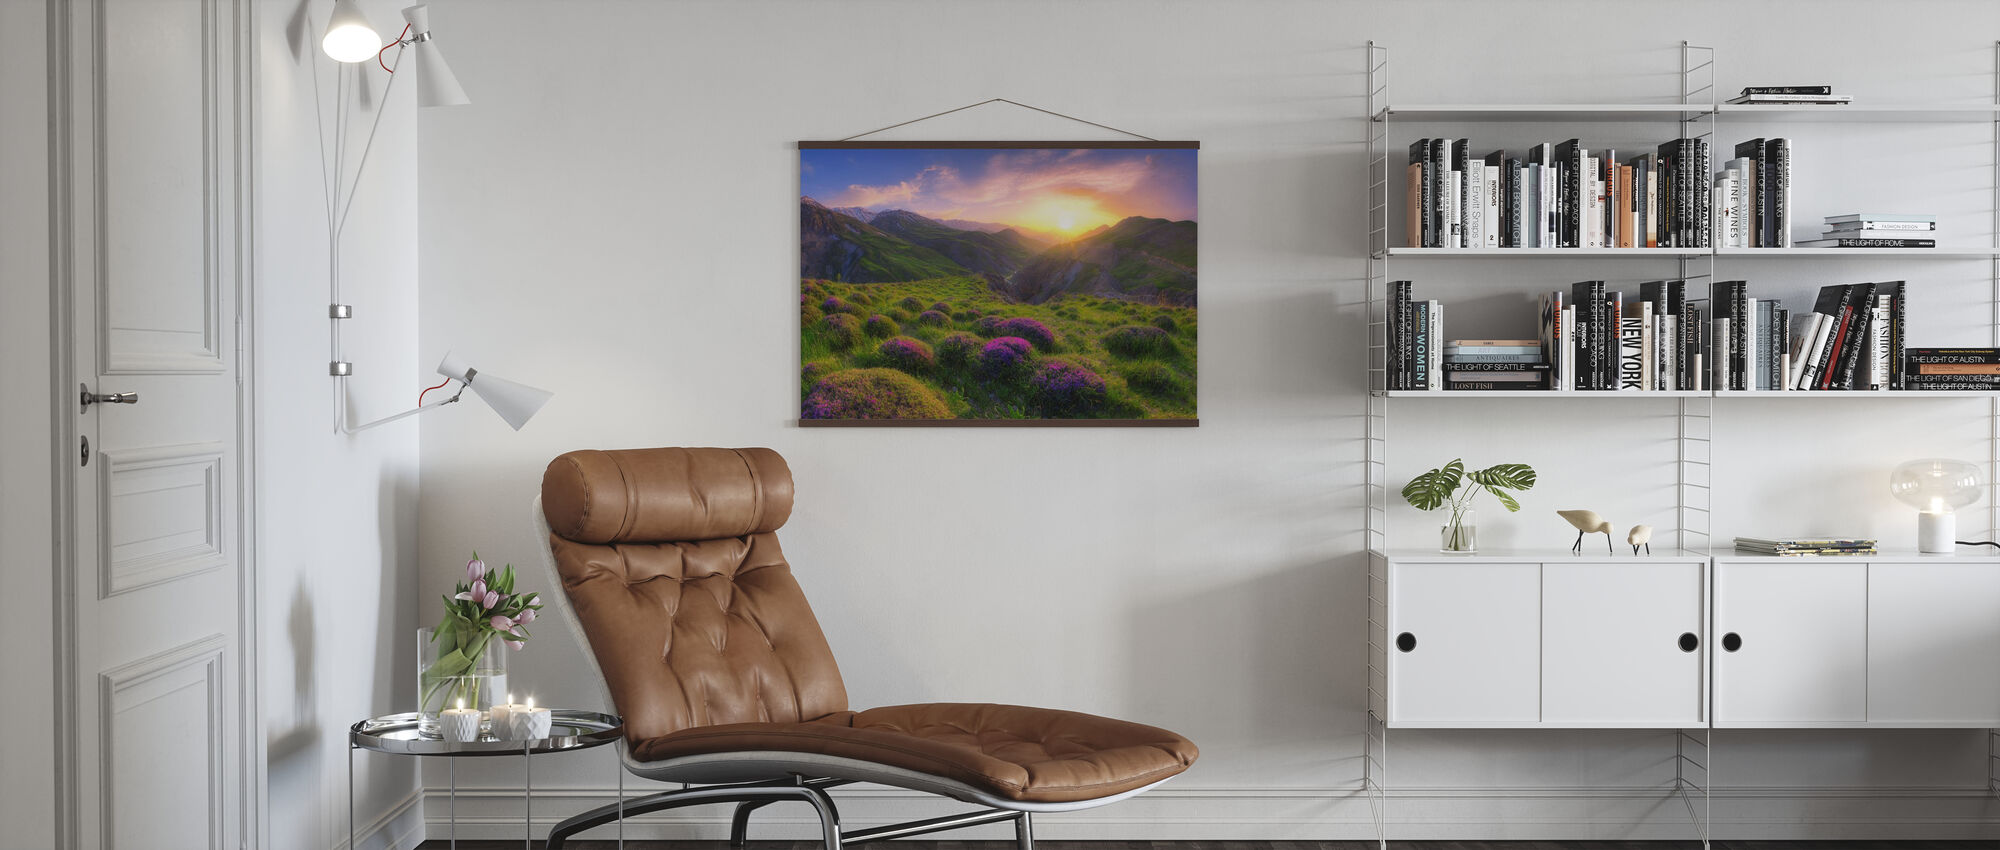 Spring in Show - Poster - Living Room